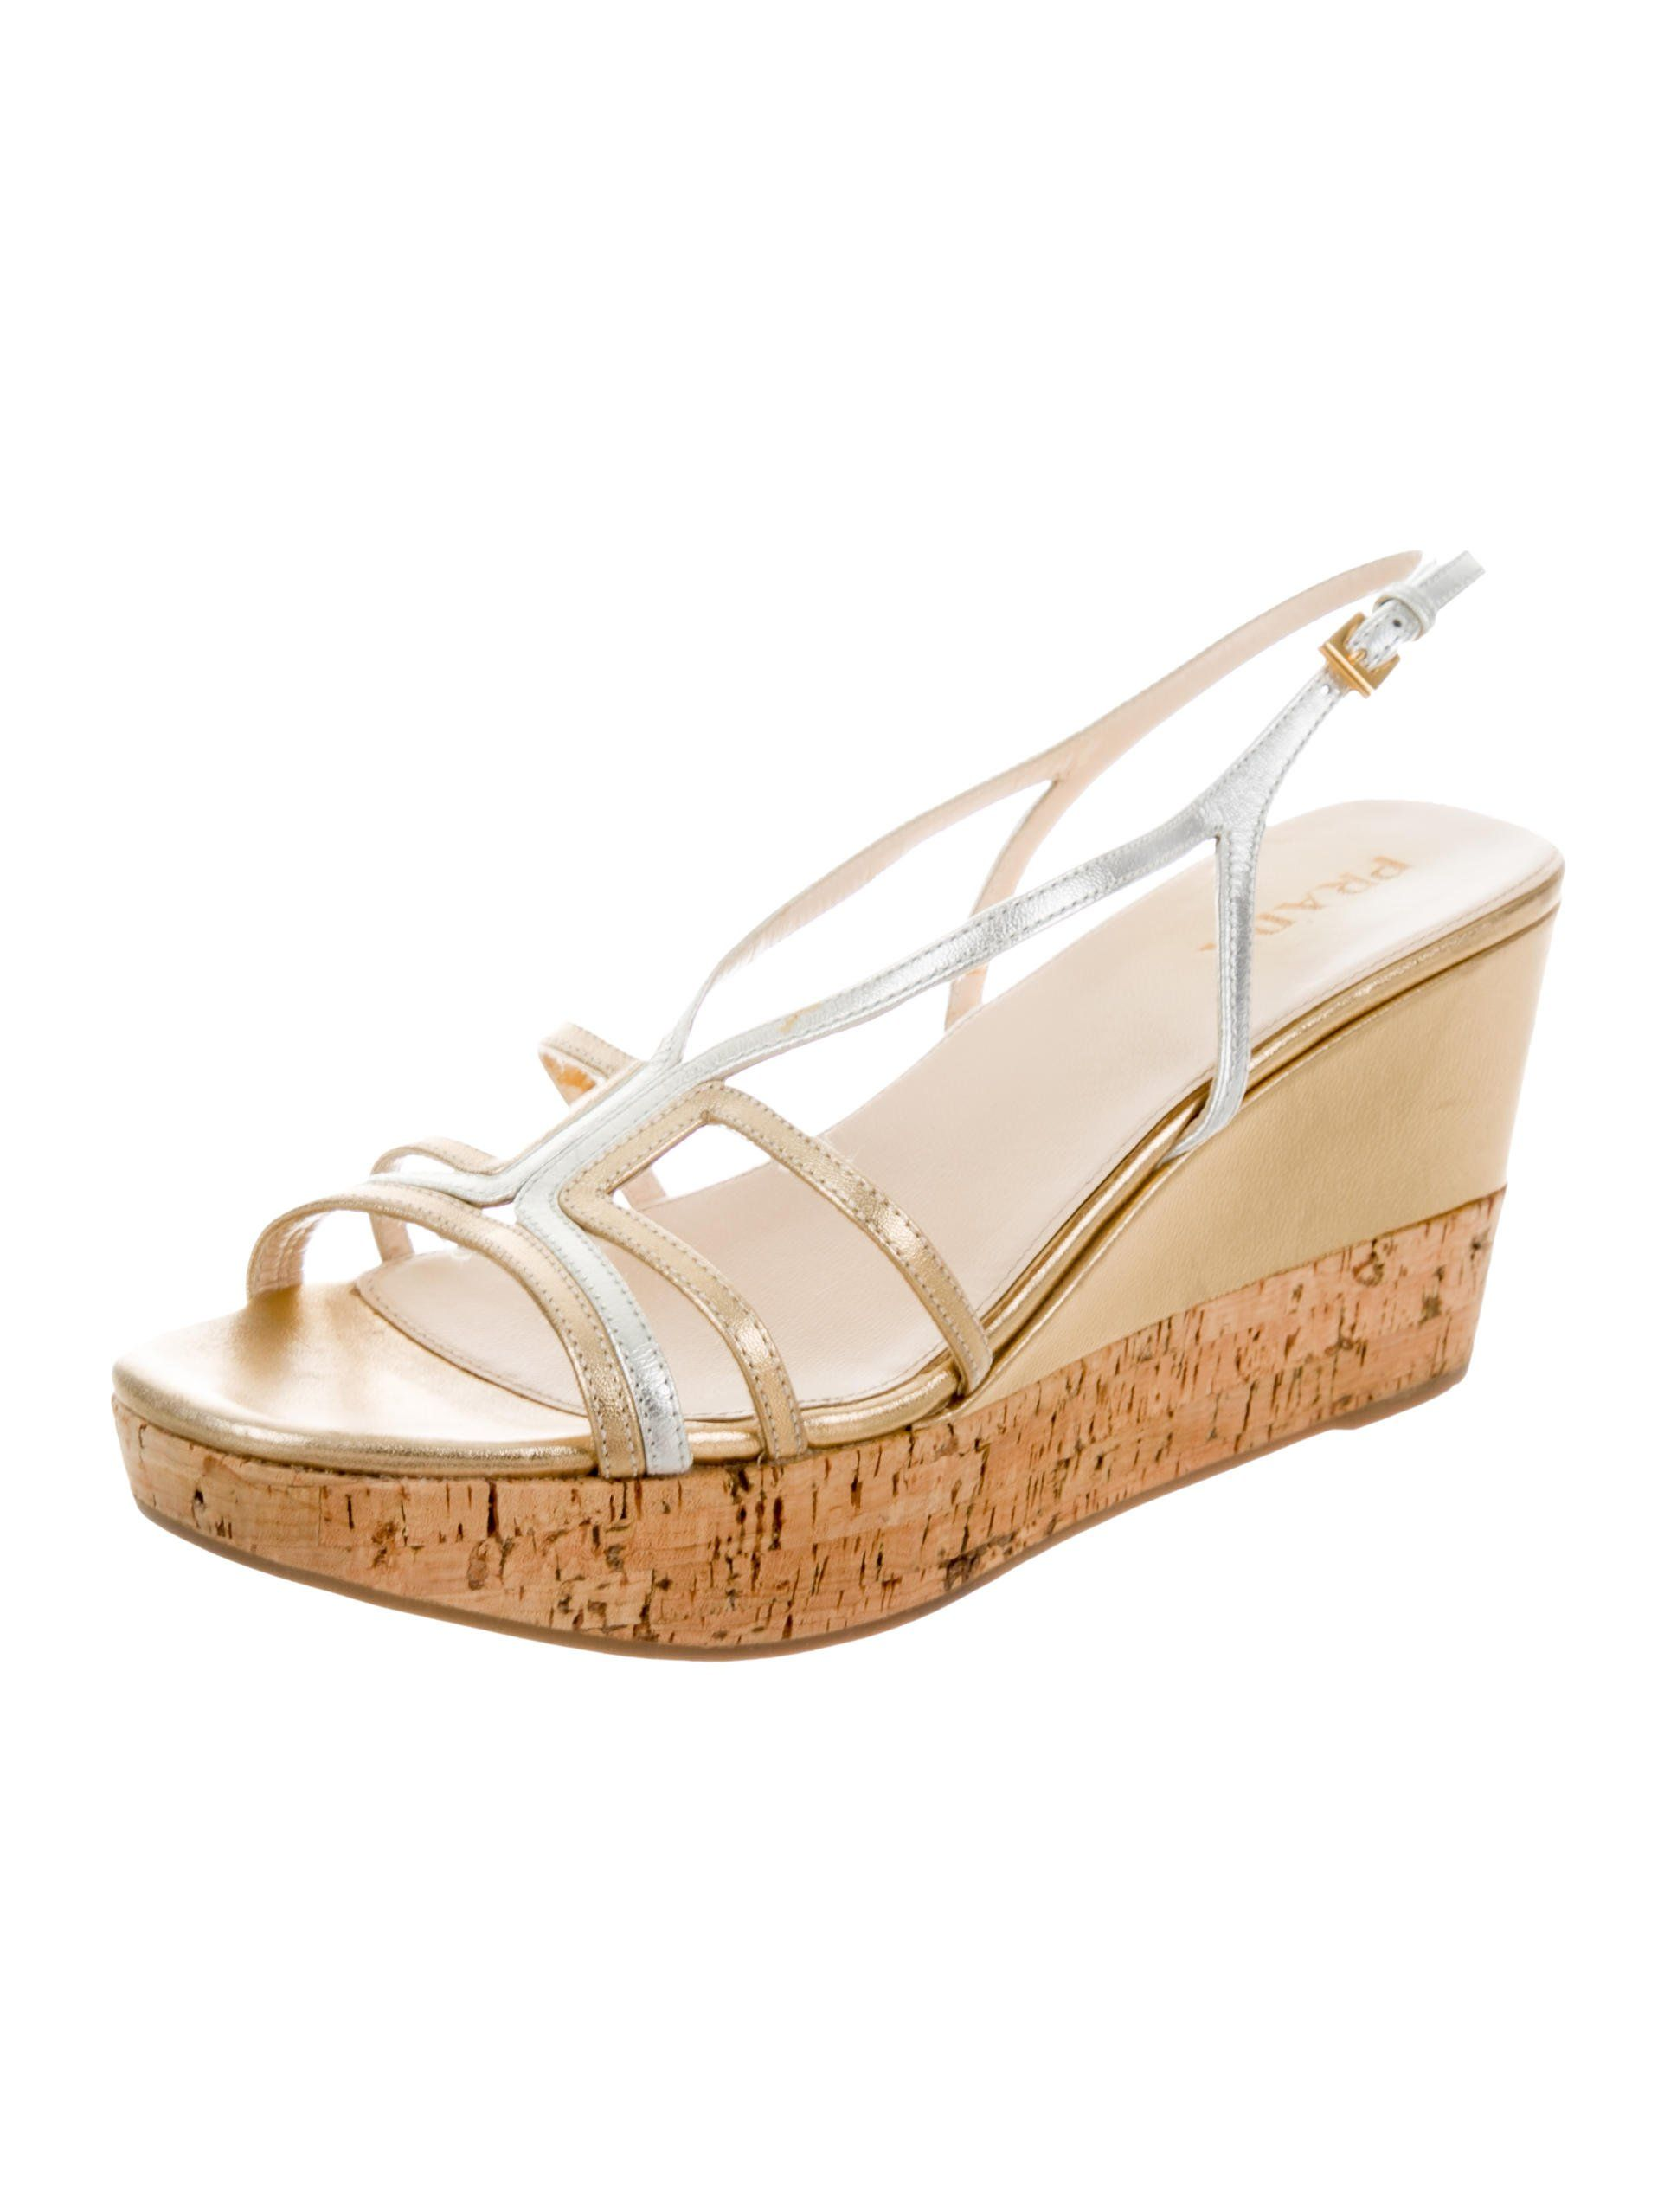 f5678de9eae8 Gold and silver-tone leather Prada wedge sandals with cork heels. Includes  dust bag.